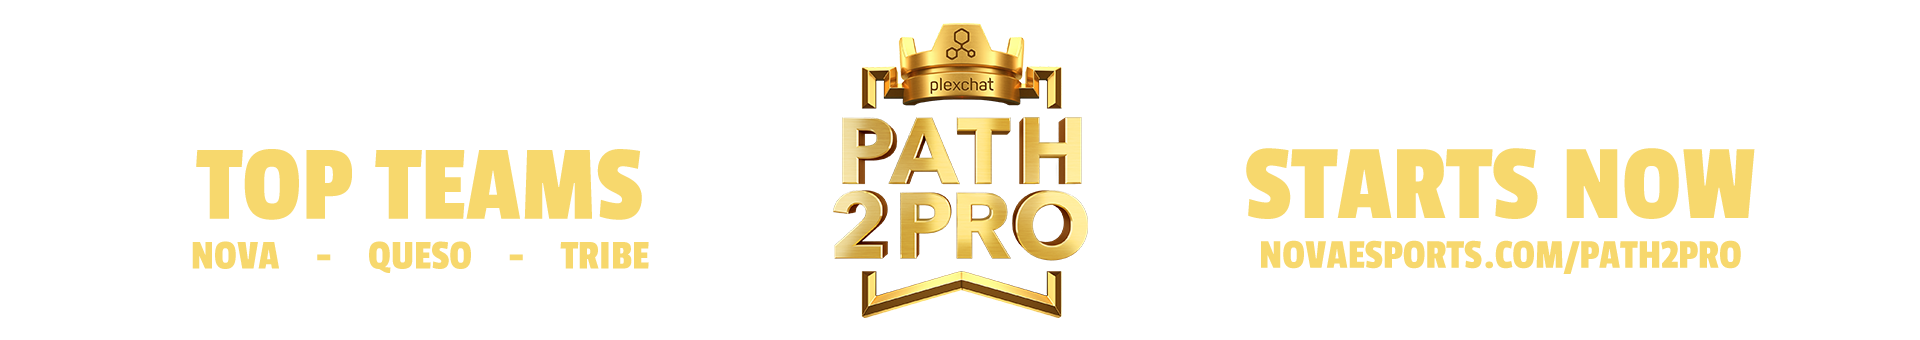 path2pro header.png